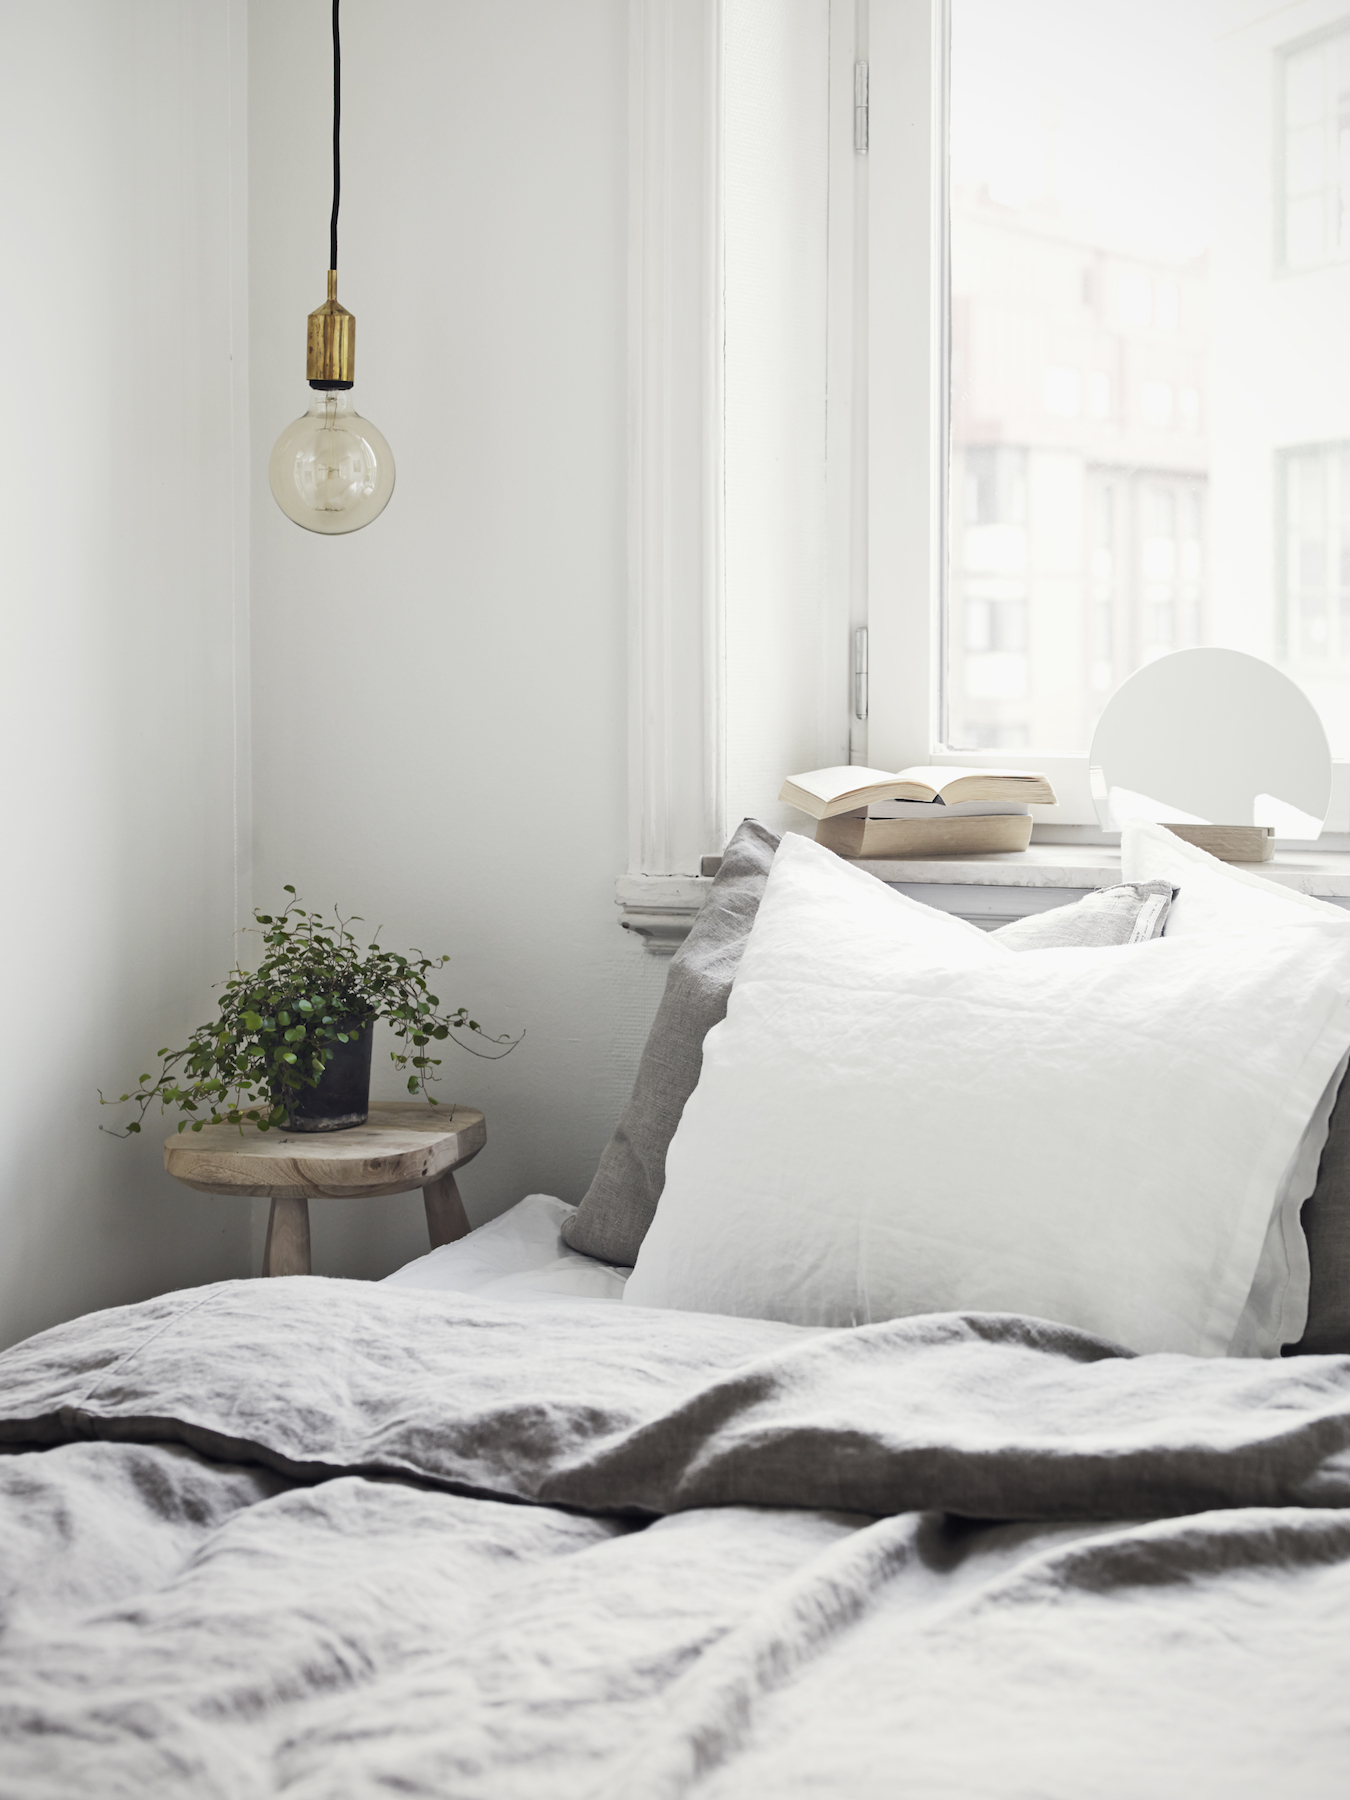 Bed with Gray Pillows